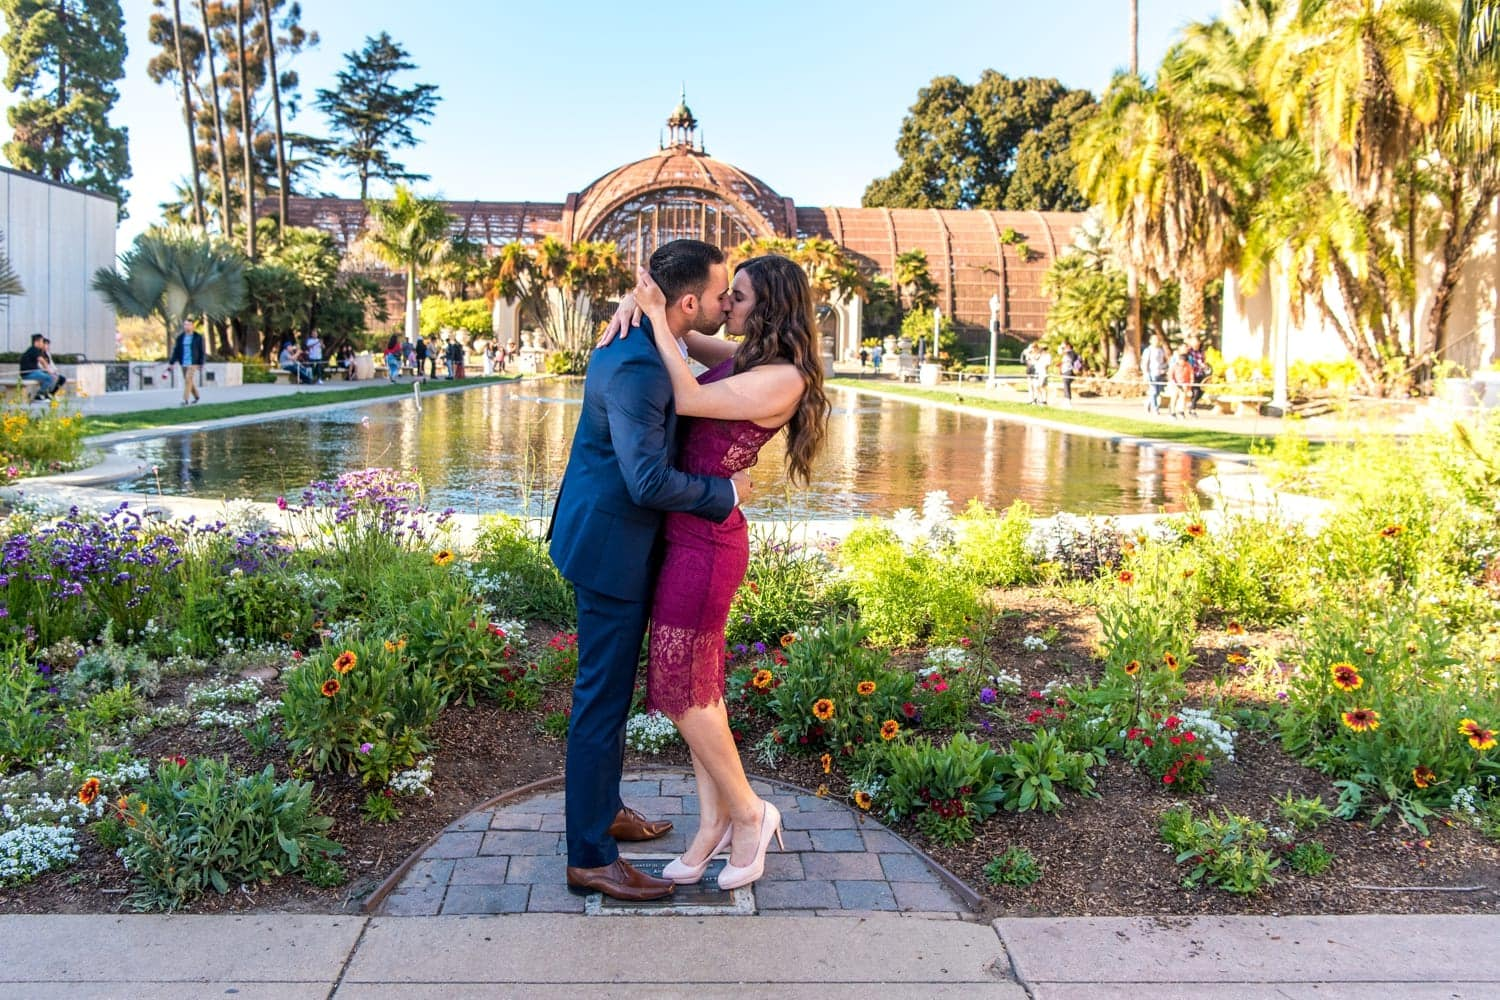 Engagement photos in front of the lily pond at Balboa Park.